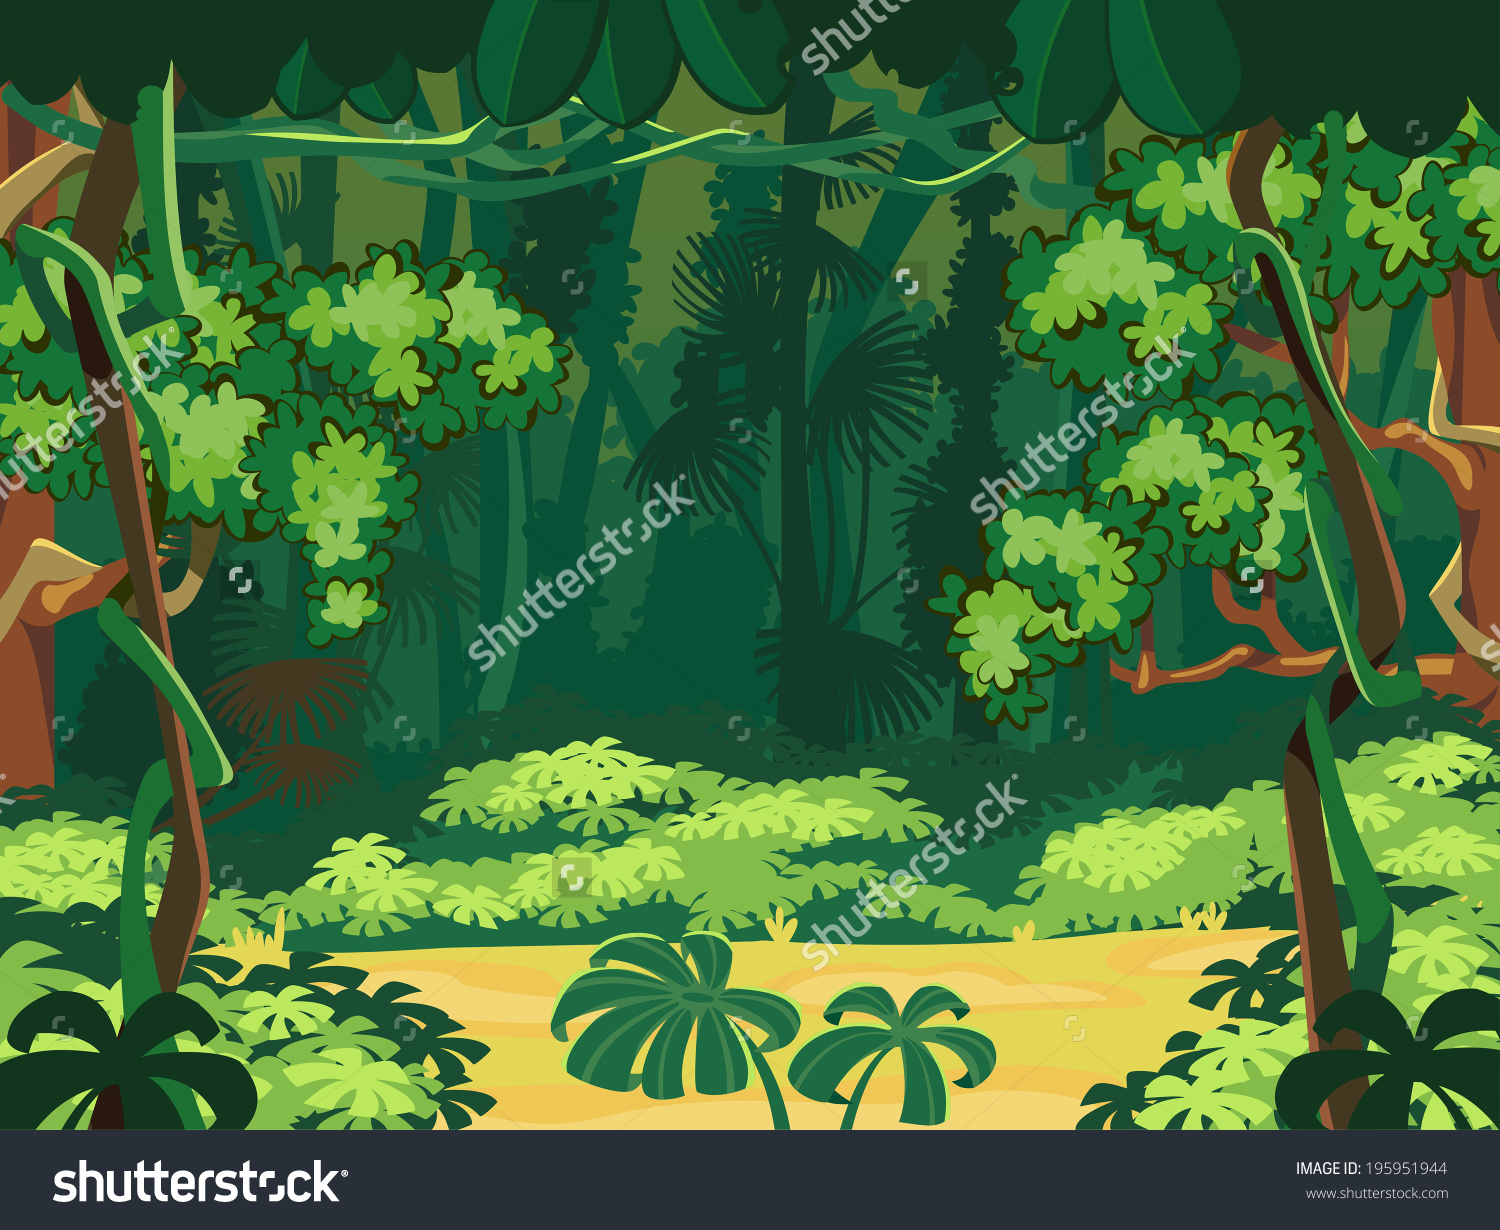 Forest Glade Beautiful Landscape Background Stock Vector 195951944.